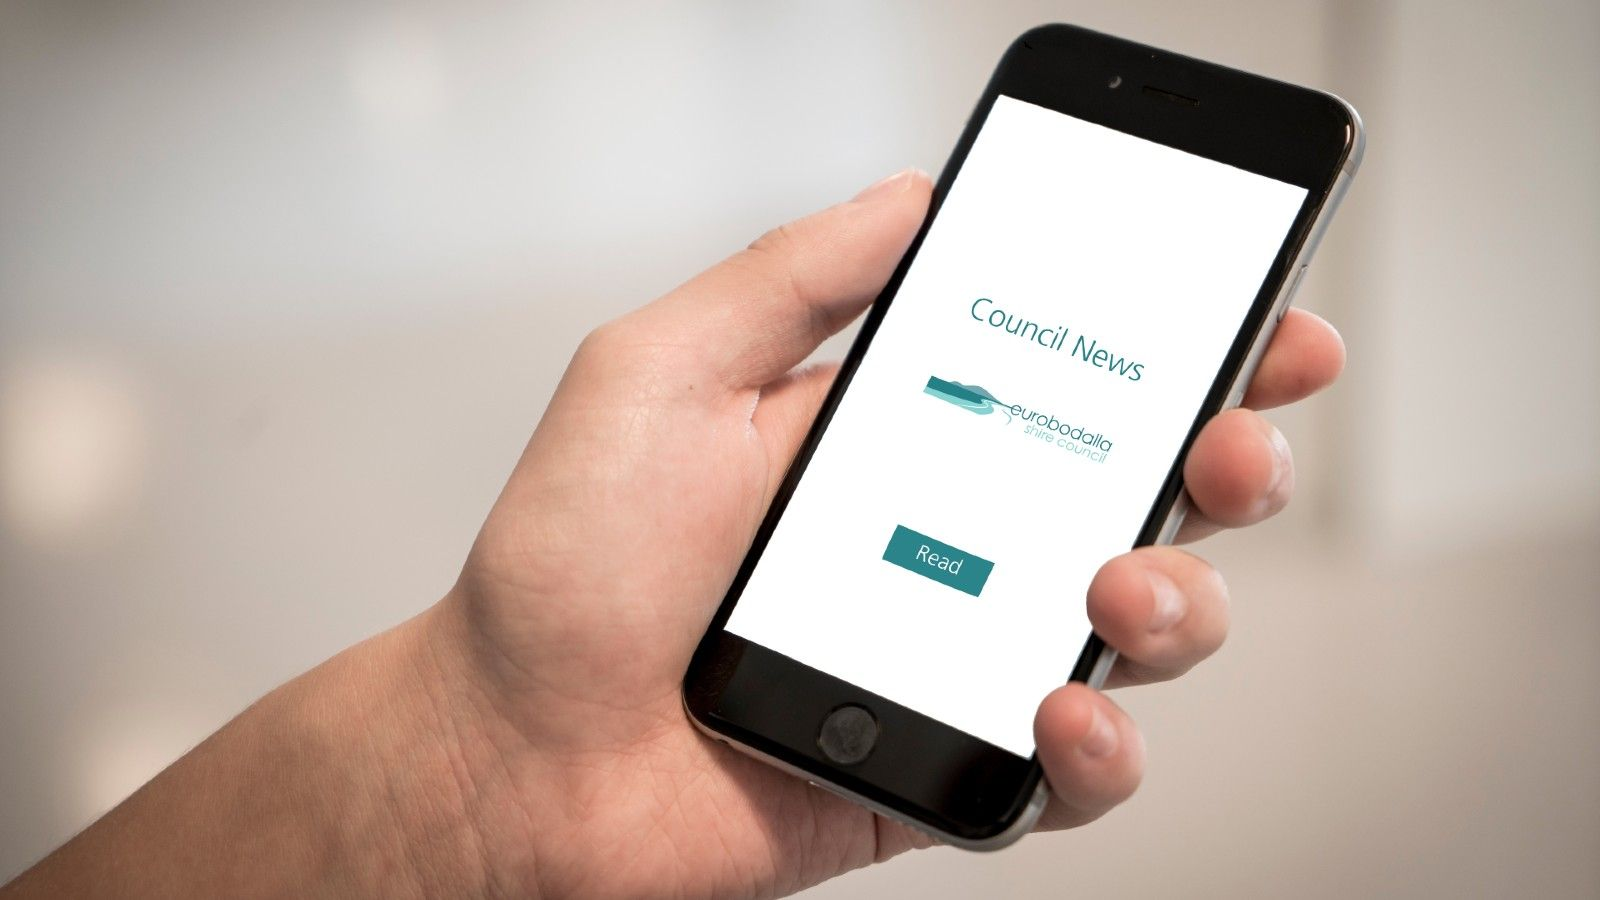 A person's hand holding a mobile phone with 'Council News, read now' displayed on the screen. banner image